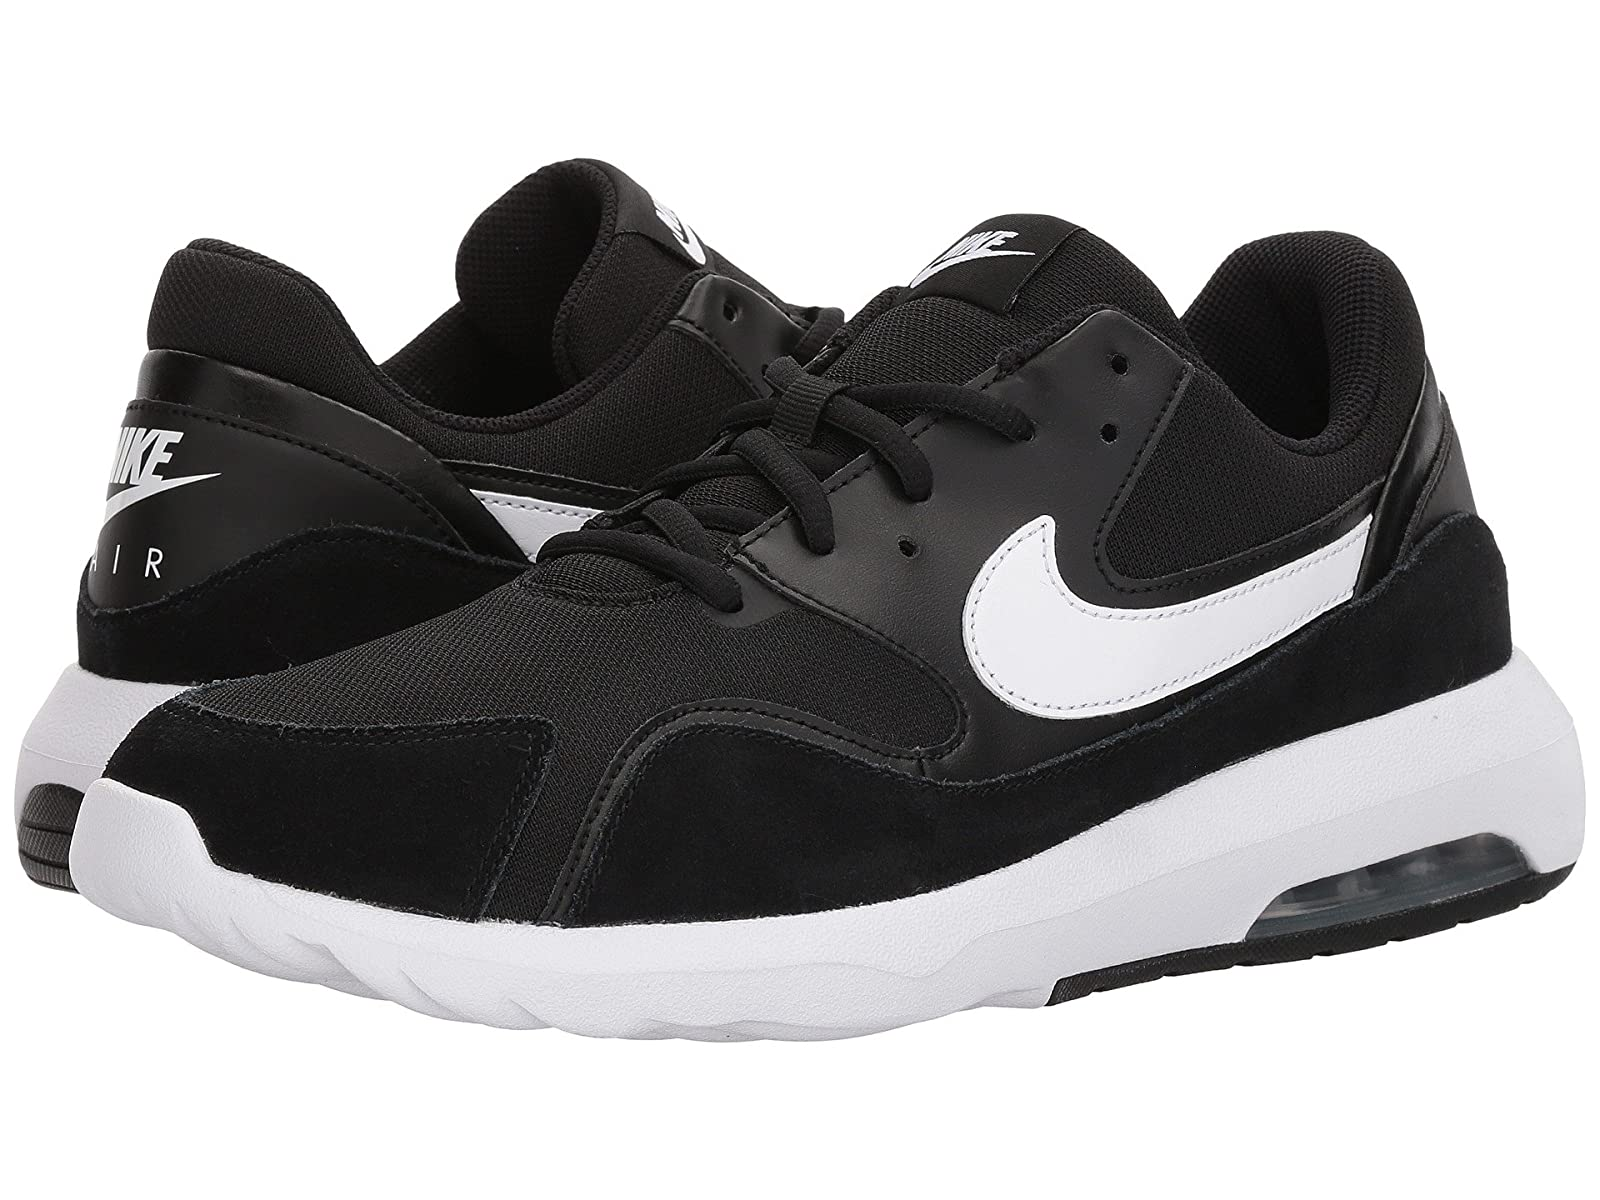 Nike Air Max NostalgicCheap and distinctive eye-catching shoes